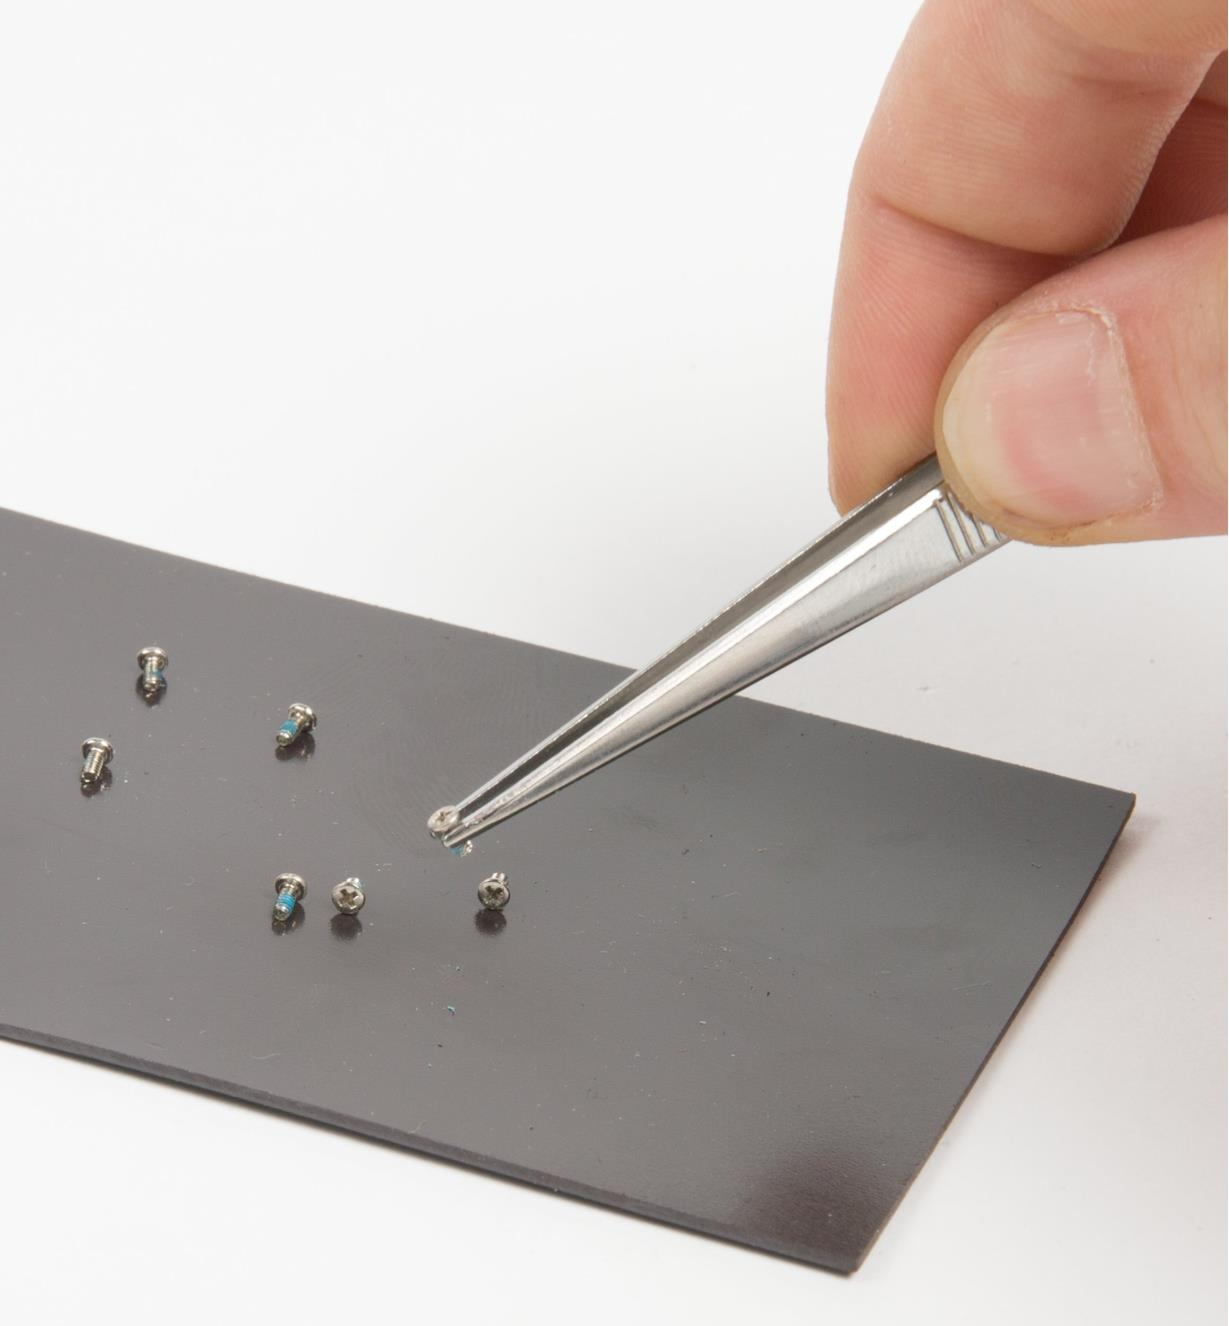 "2 3/4"" x 5"" magnetic pad for screws and small ferrous parts included with 51-Piece Micro-Tool Set"